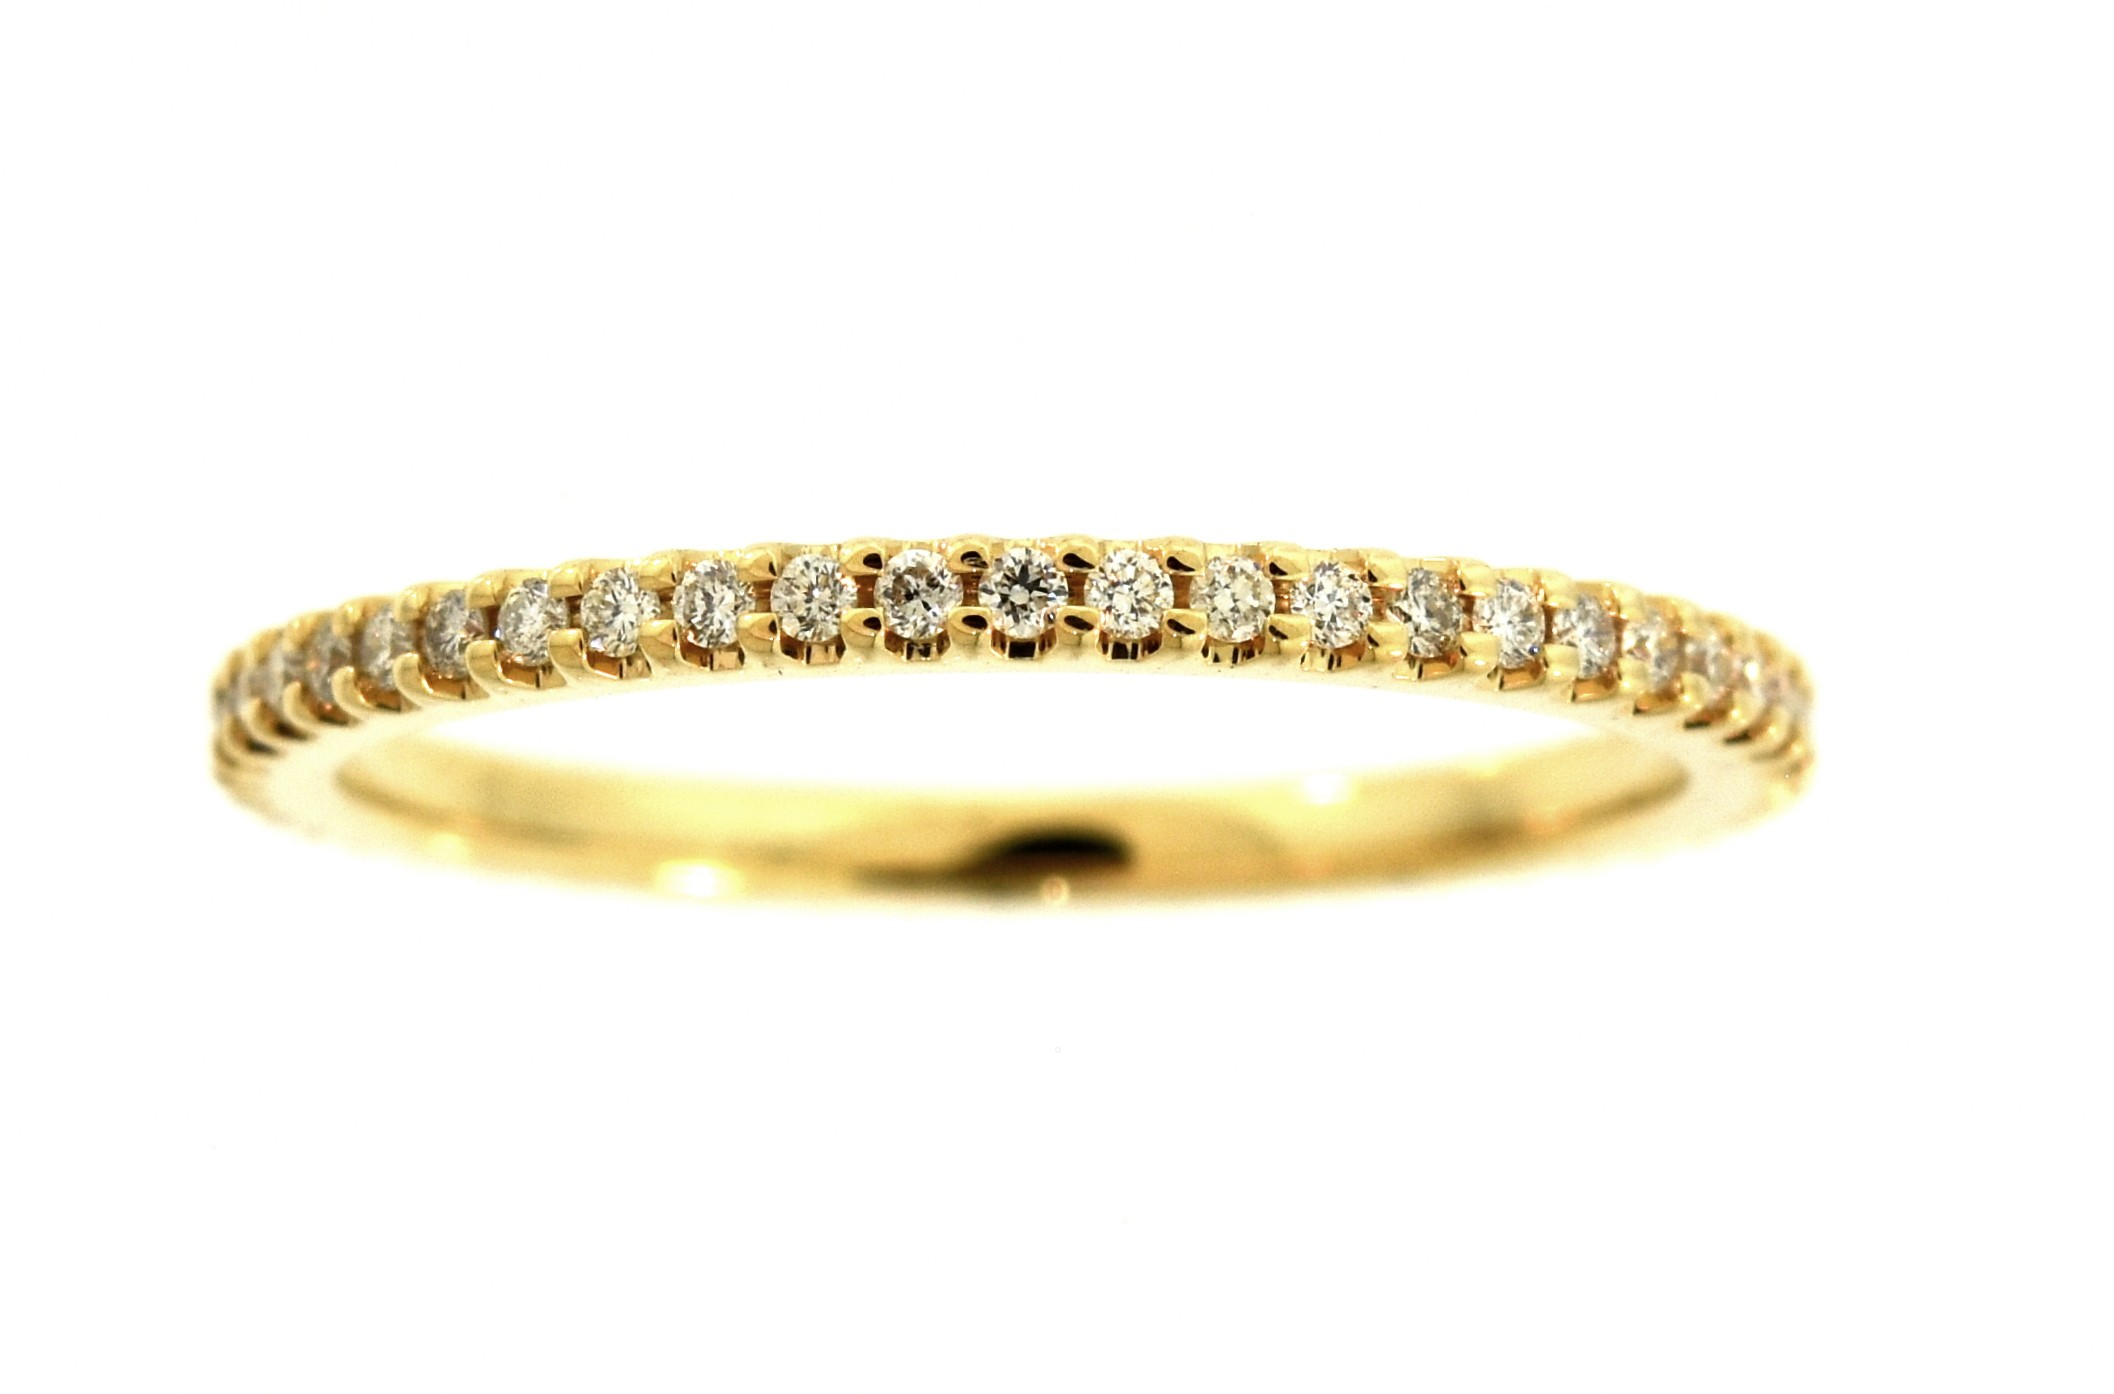 j rings bands sale at band diamond id eternity z platinum tiffany ring jewelry for co gold